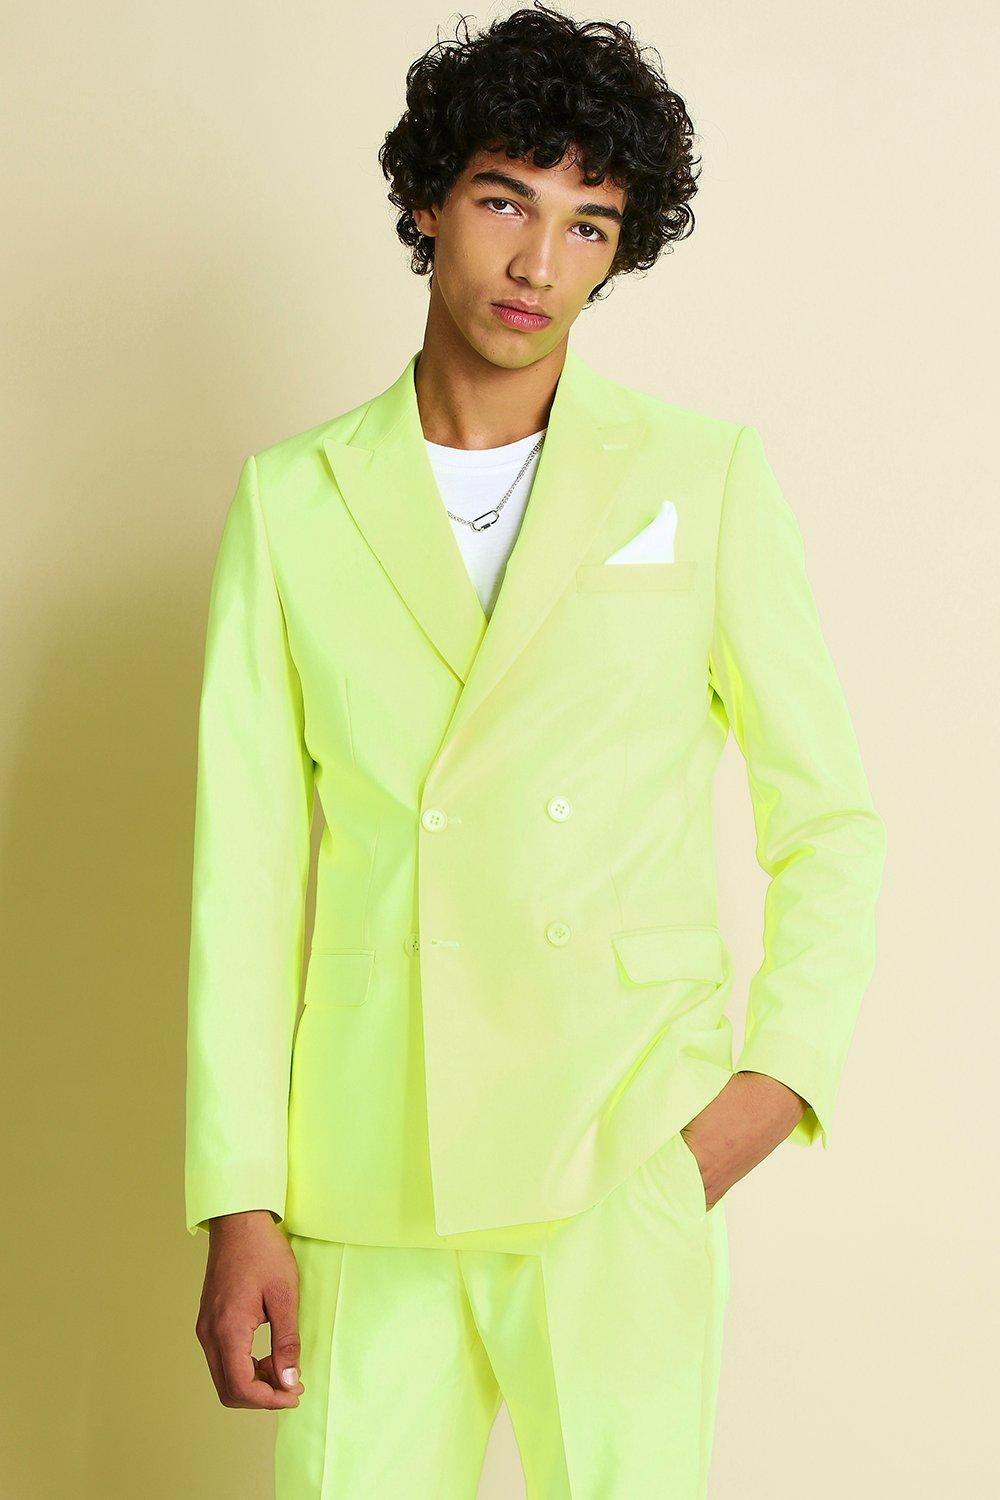 1980s Clothing, Fashion | 80s Style Clothes Mens Skinny Neon Double Breasted Suit Jacket - Yellow $57.00 AT vintagedancer.com